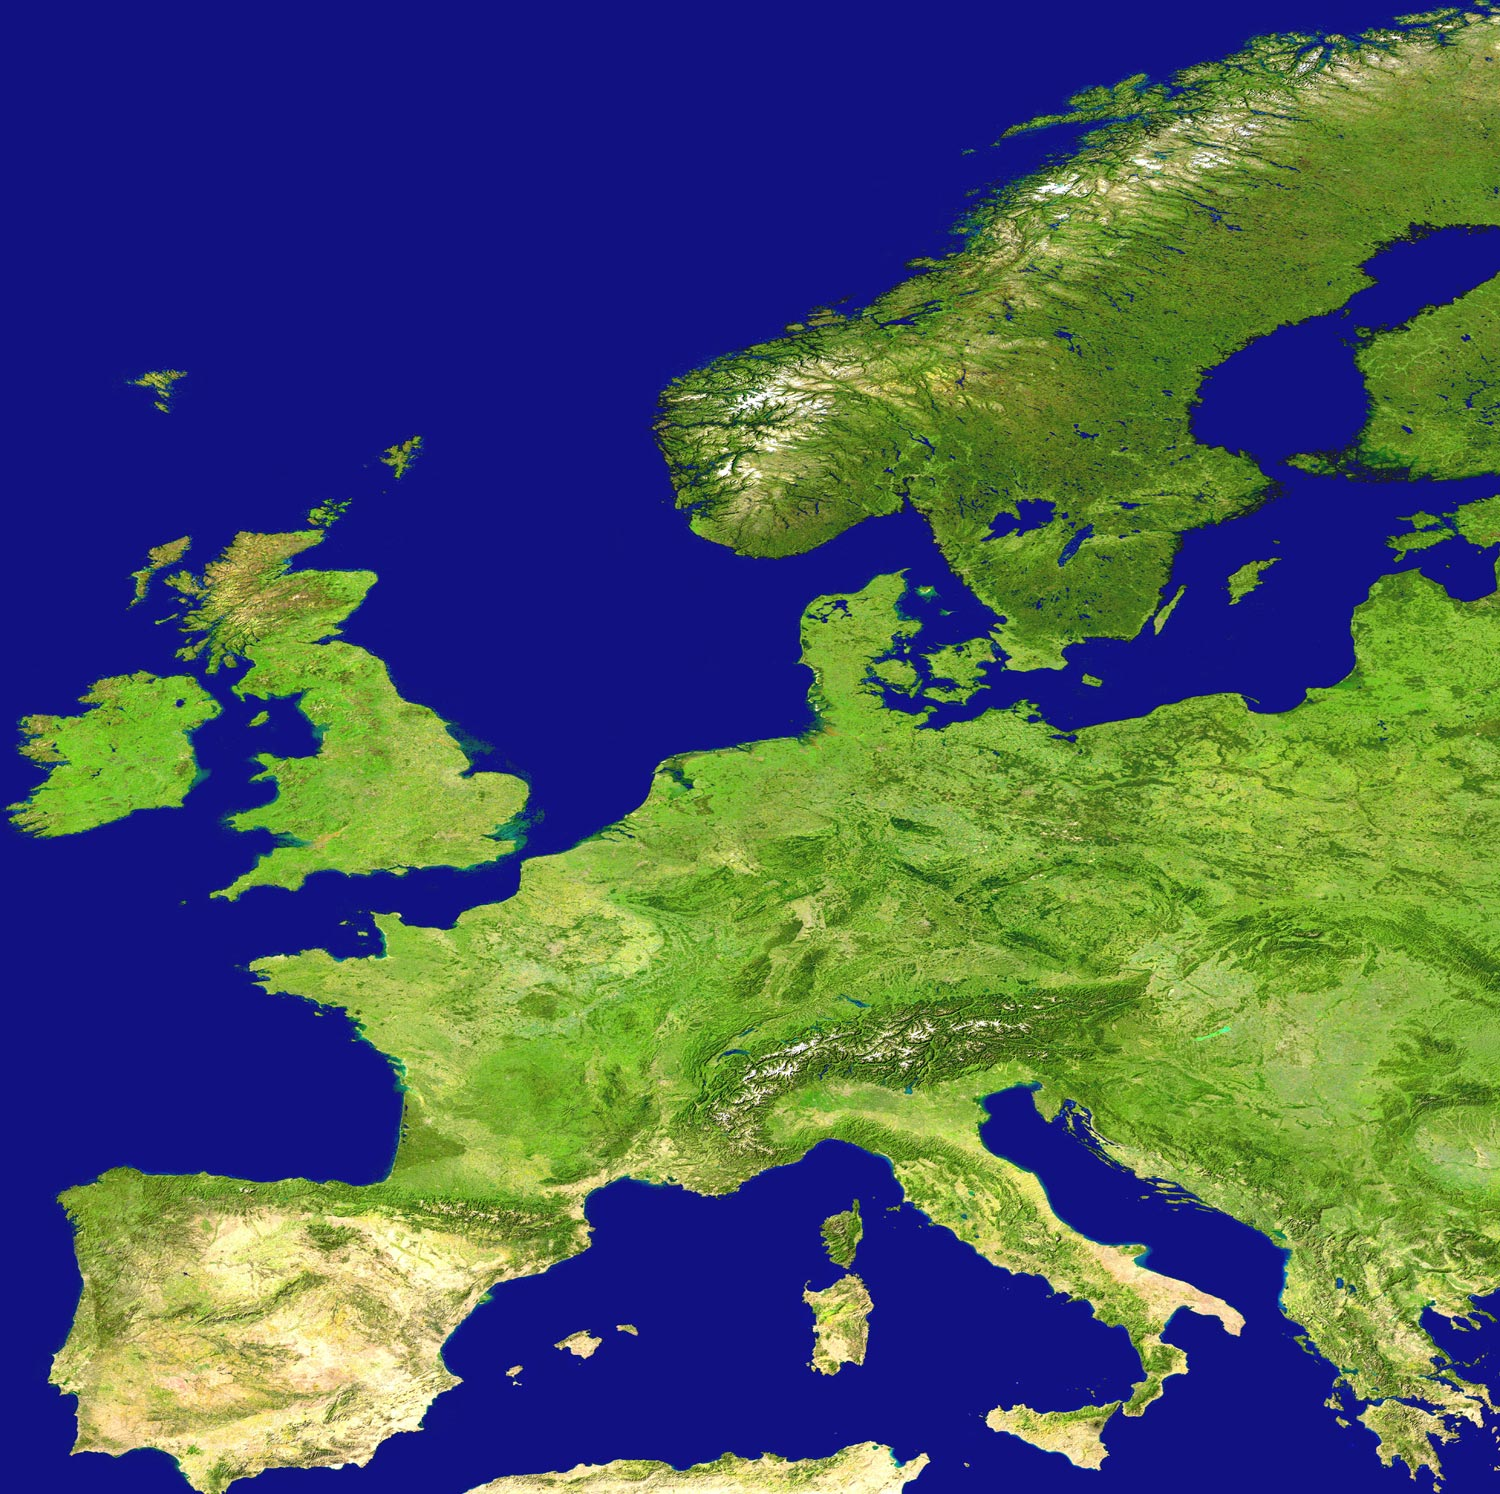 Europe Satellite Image - Europe satellite map